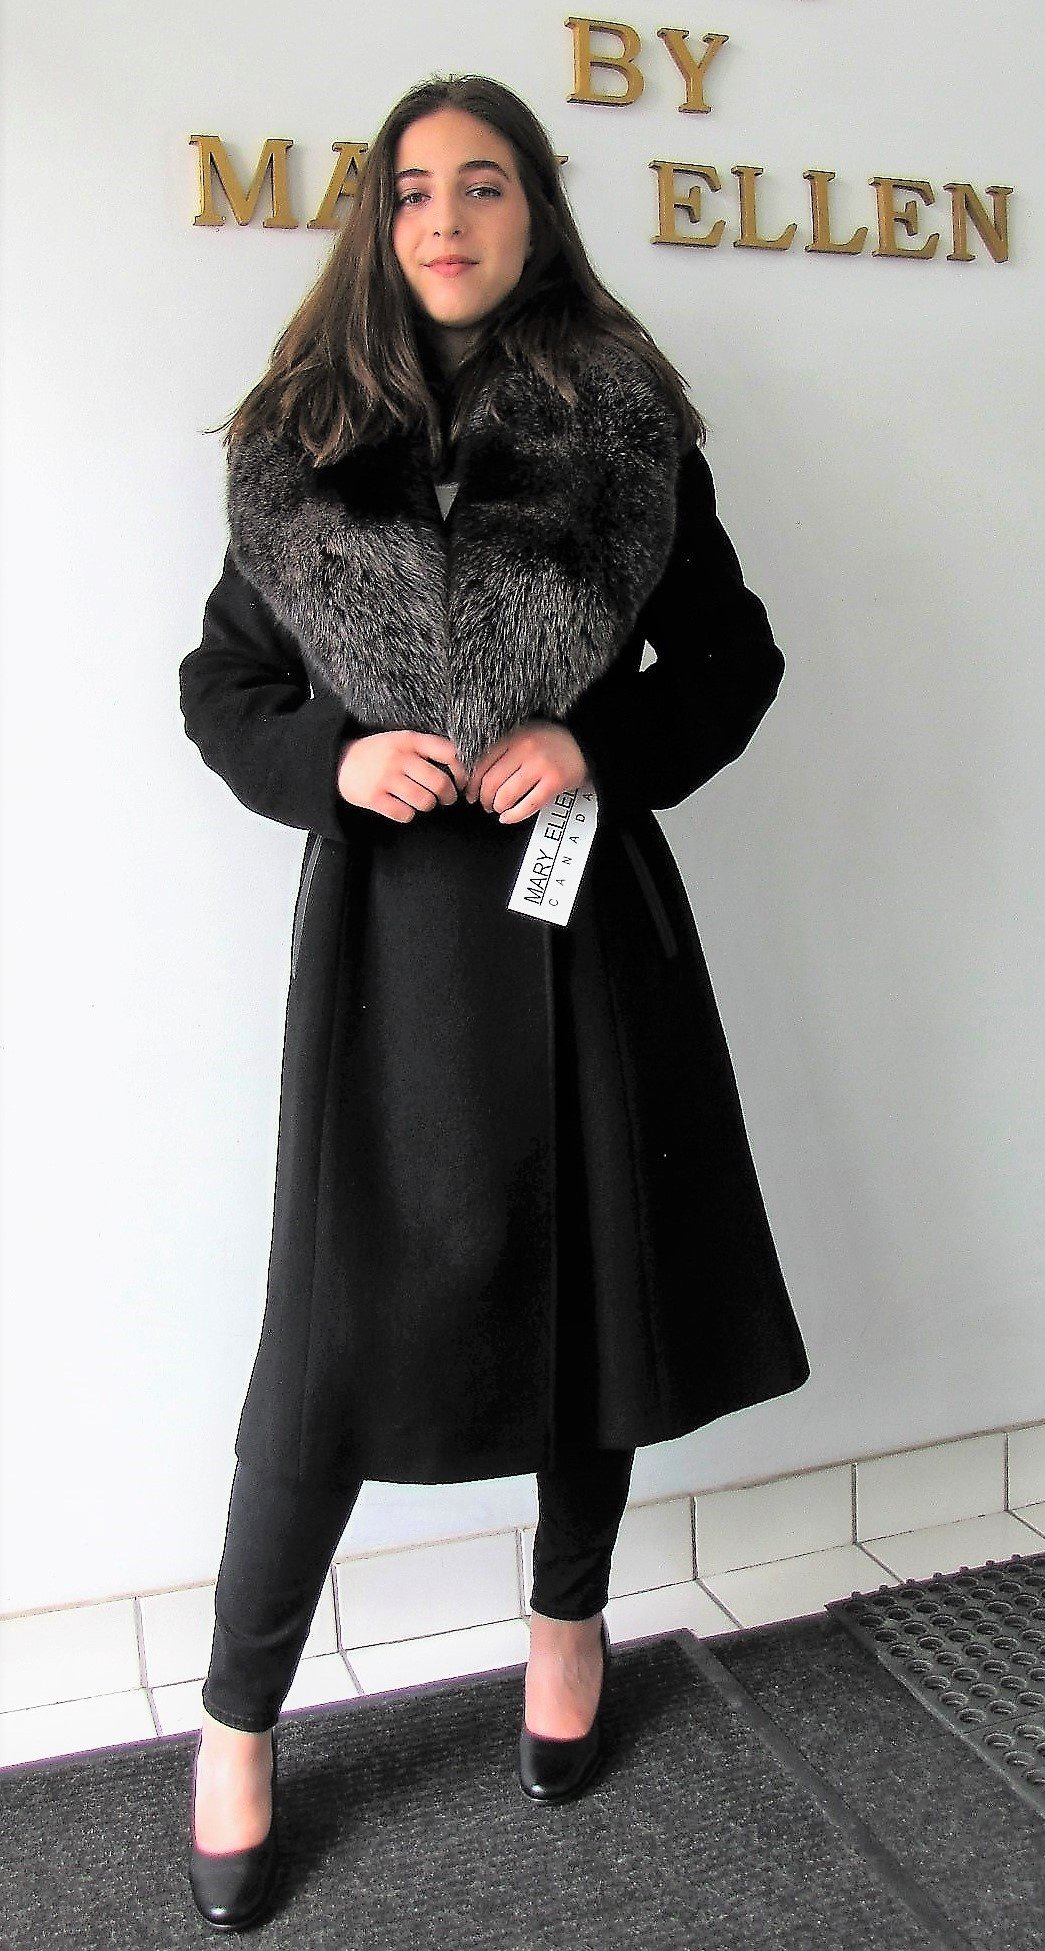 Style# 4403 Black with Snow Top Fox Collar Cashmere/Wool  Features:  Magnificent  Snowtop Fox Collar. The world seems to melt away the moment you slip it on.  Wrap style coat with self-belt that cinches the  waist, genuine leather trim, and inner tie.  Wear it with elegance, ease, and confidence that you have made an  exceptional choice. Full chamois lining.  In-Stock Colours:  Black, Red, Grey, Plum, Camel or can be made in the colour of your choice.   Various Fabrics: Cashmere and Cashmere/Wool Blends,  Alpaca blends, 100% Pure Virgin Wool  and other fine fabrics   Sizes: S, M, L   Price: $1,200 and up